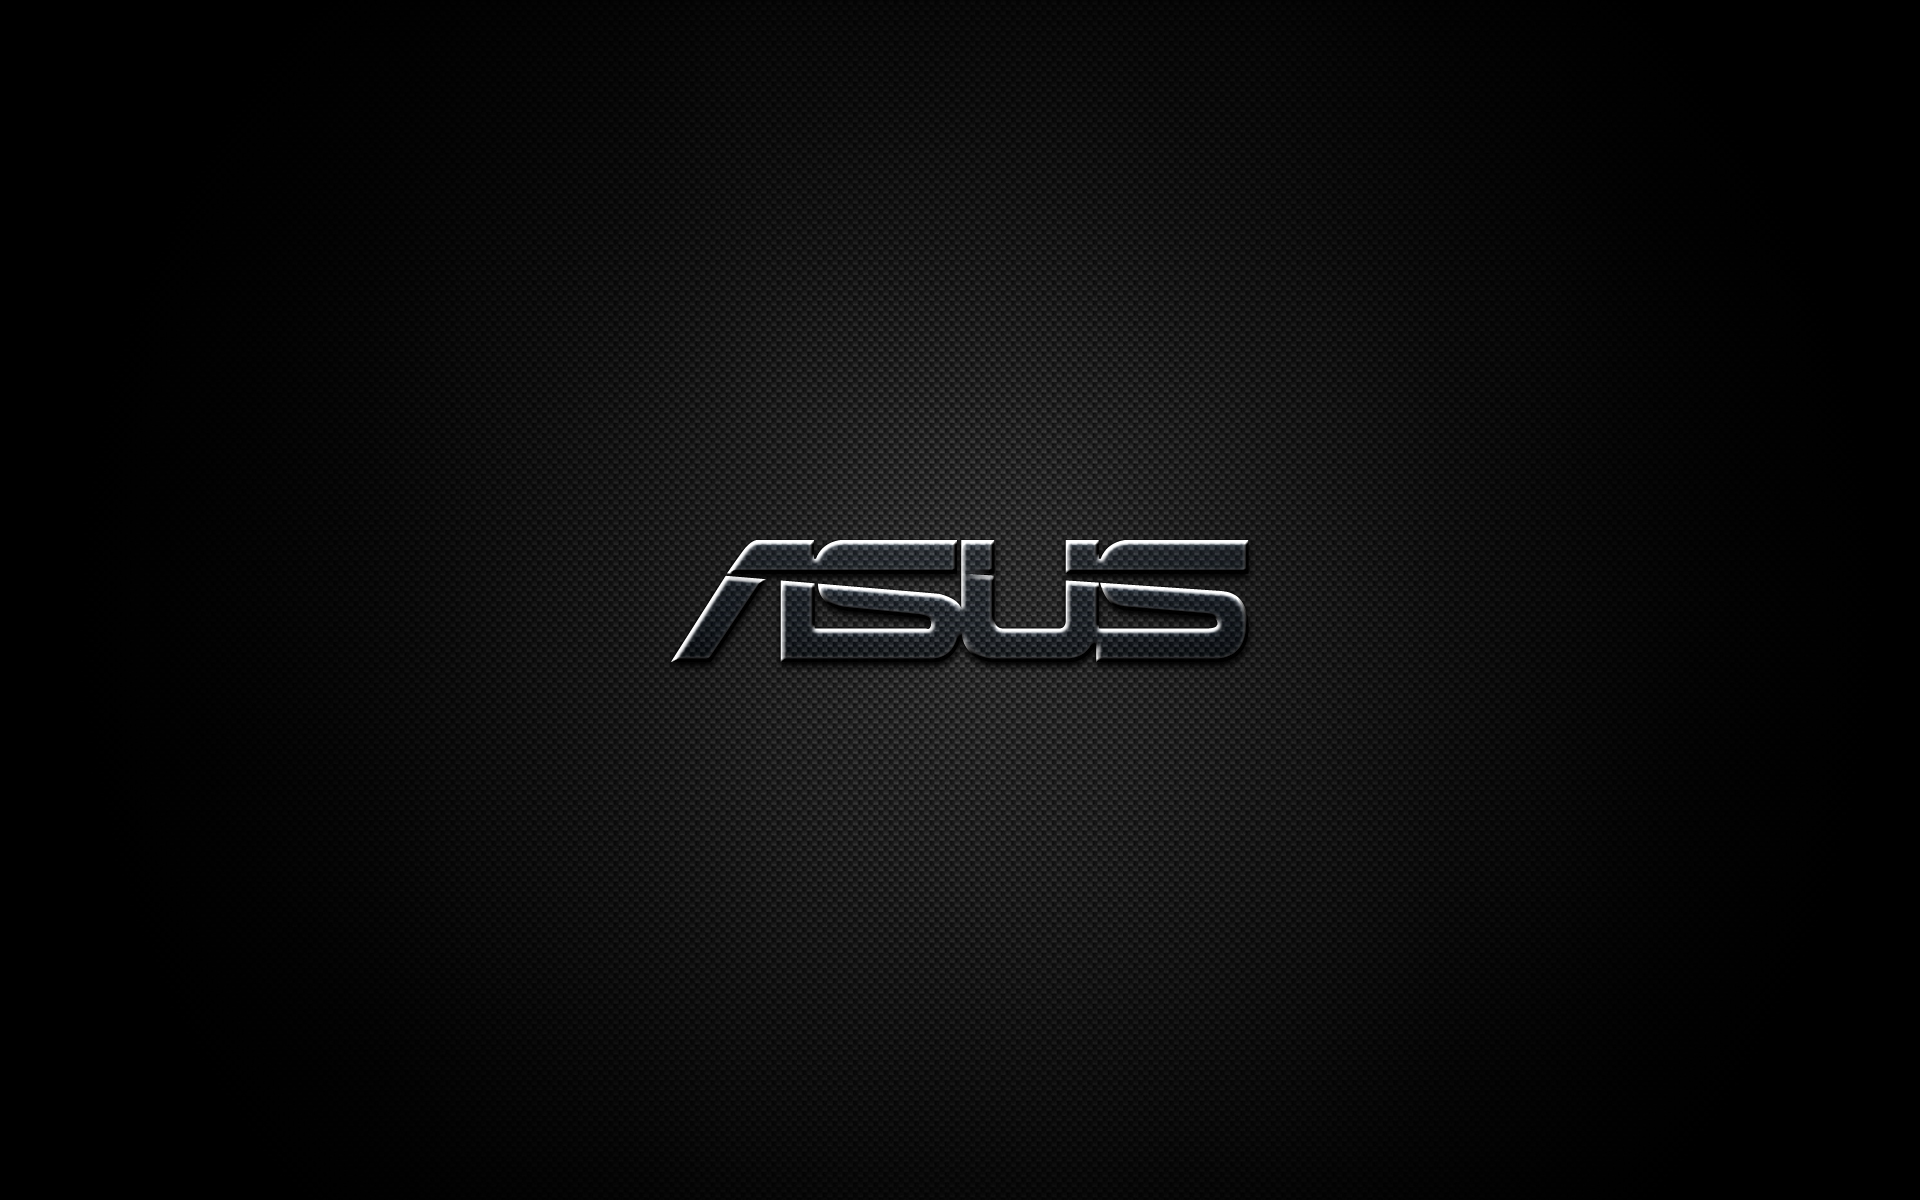 Asus Wallpaper Picture